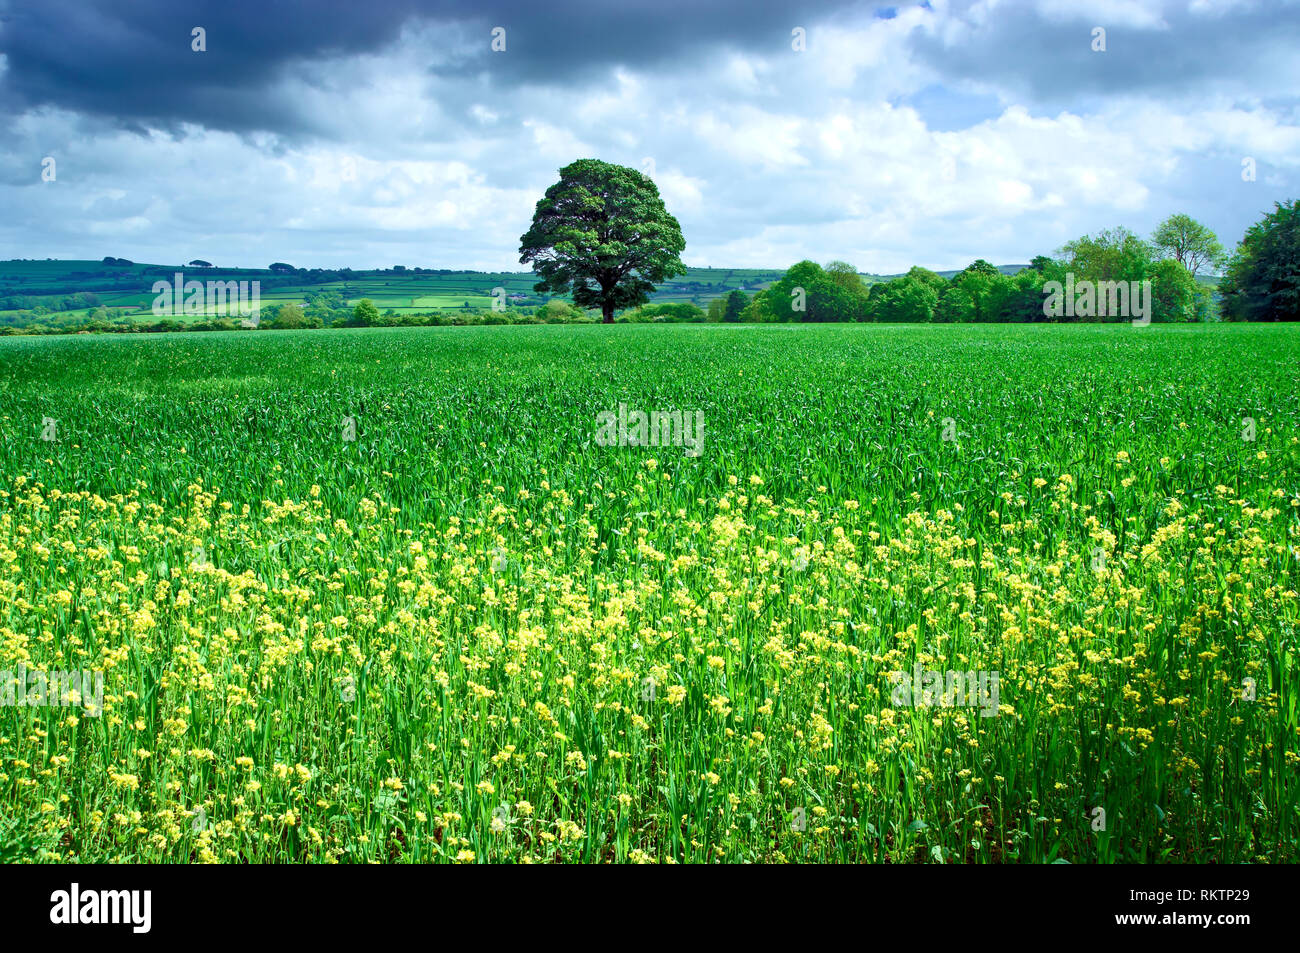 A sunny view of the fertile landscape in Pembrokeshire, Wales. - Stock Image